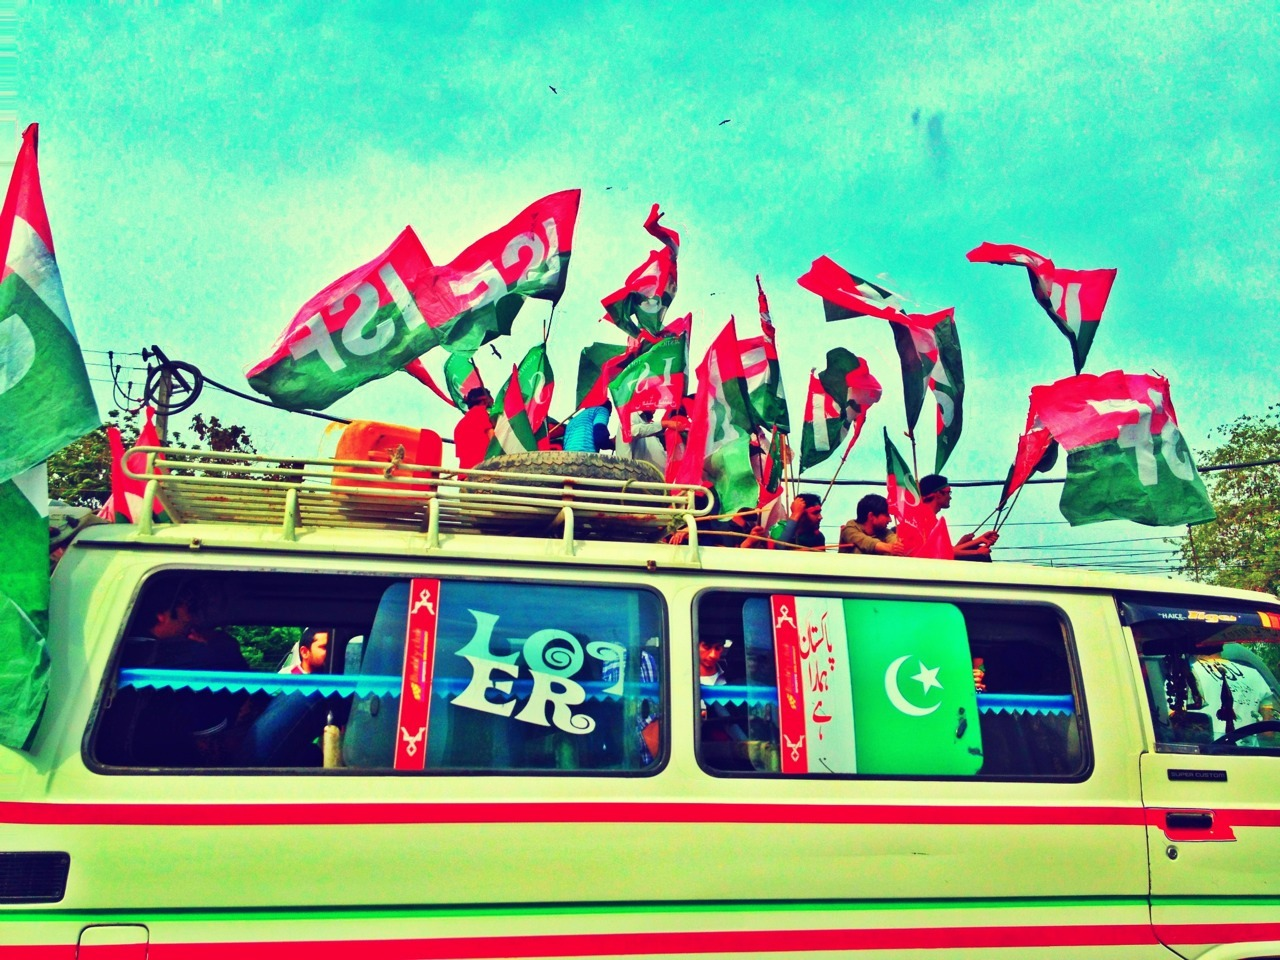 Lahore is alive. Imran Khan for a naya Pakistan!